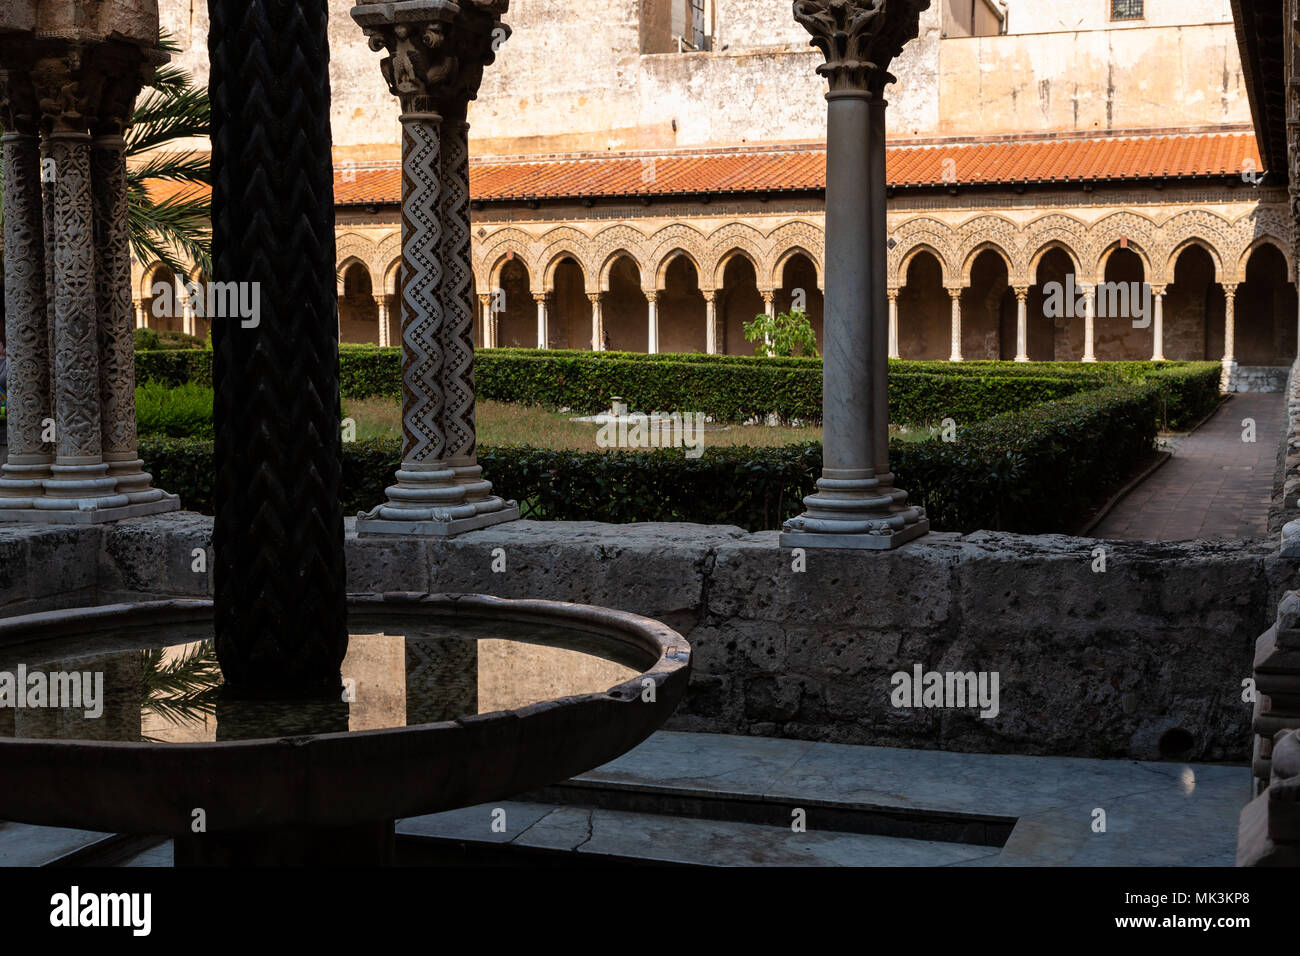 Cloître de Monreale, Sicile, Italie Photo Stock